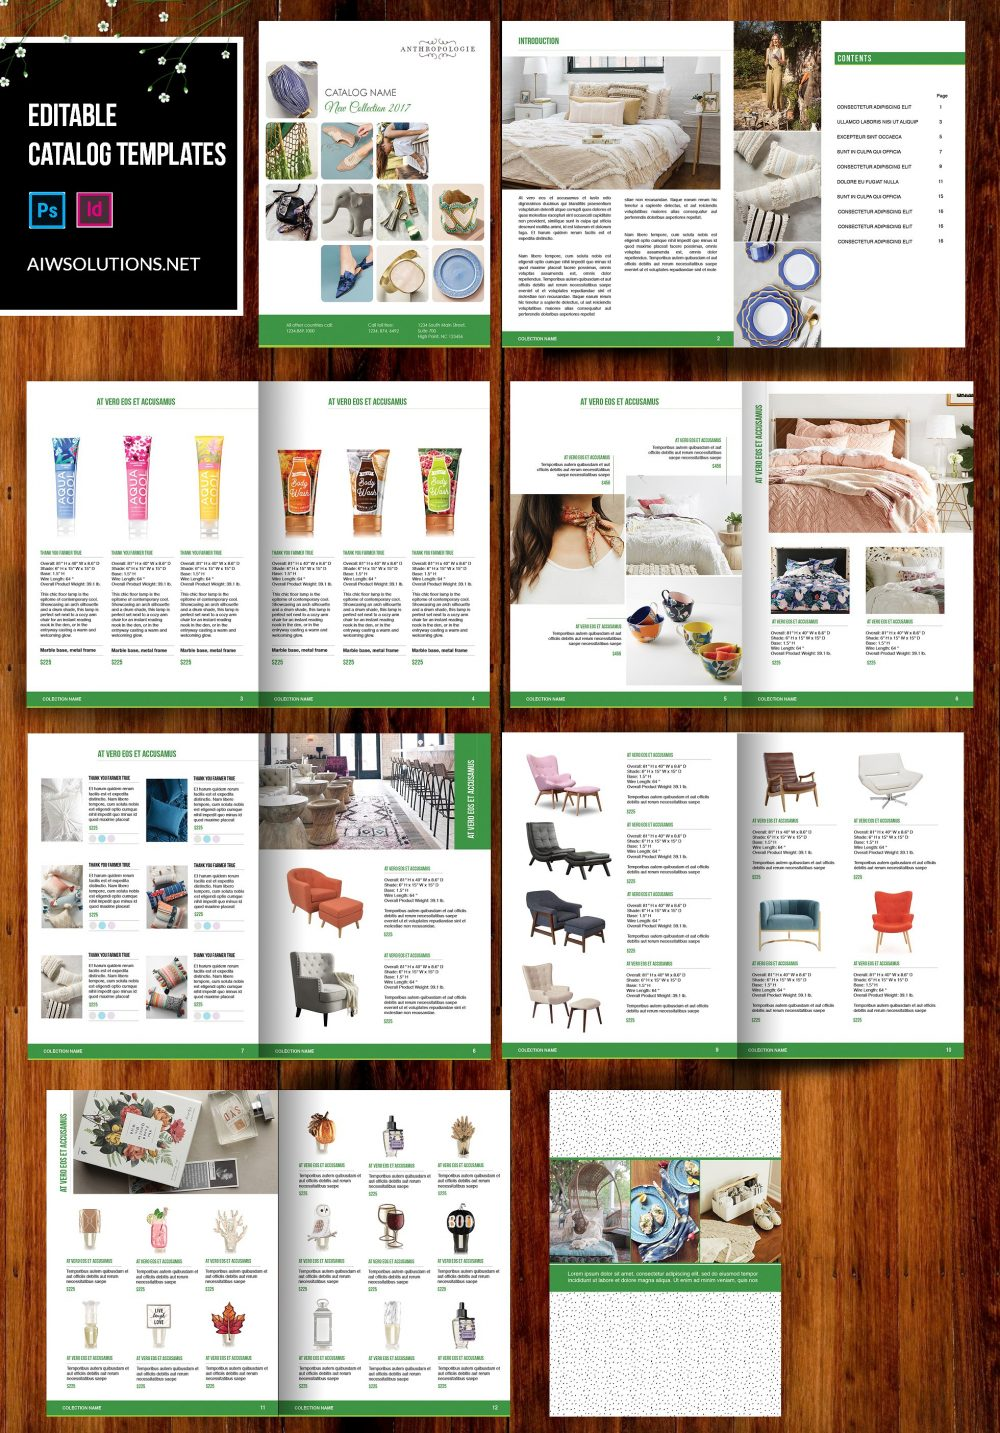 product catalog template for hat catalog shoe catalog template hand bag template accessory